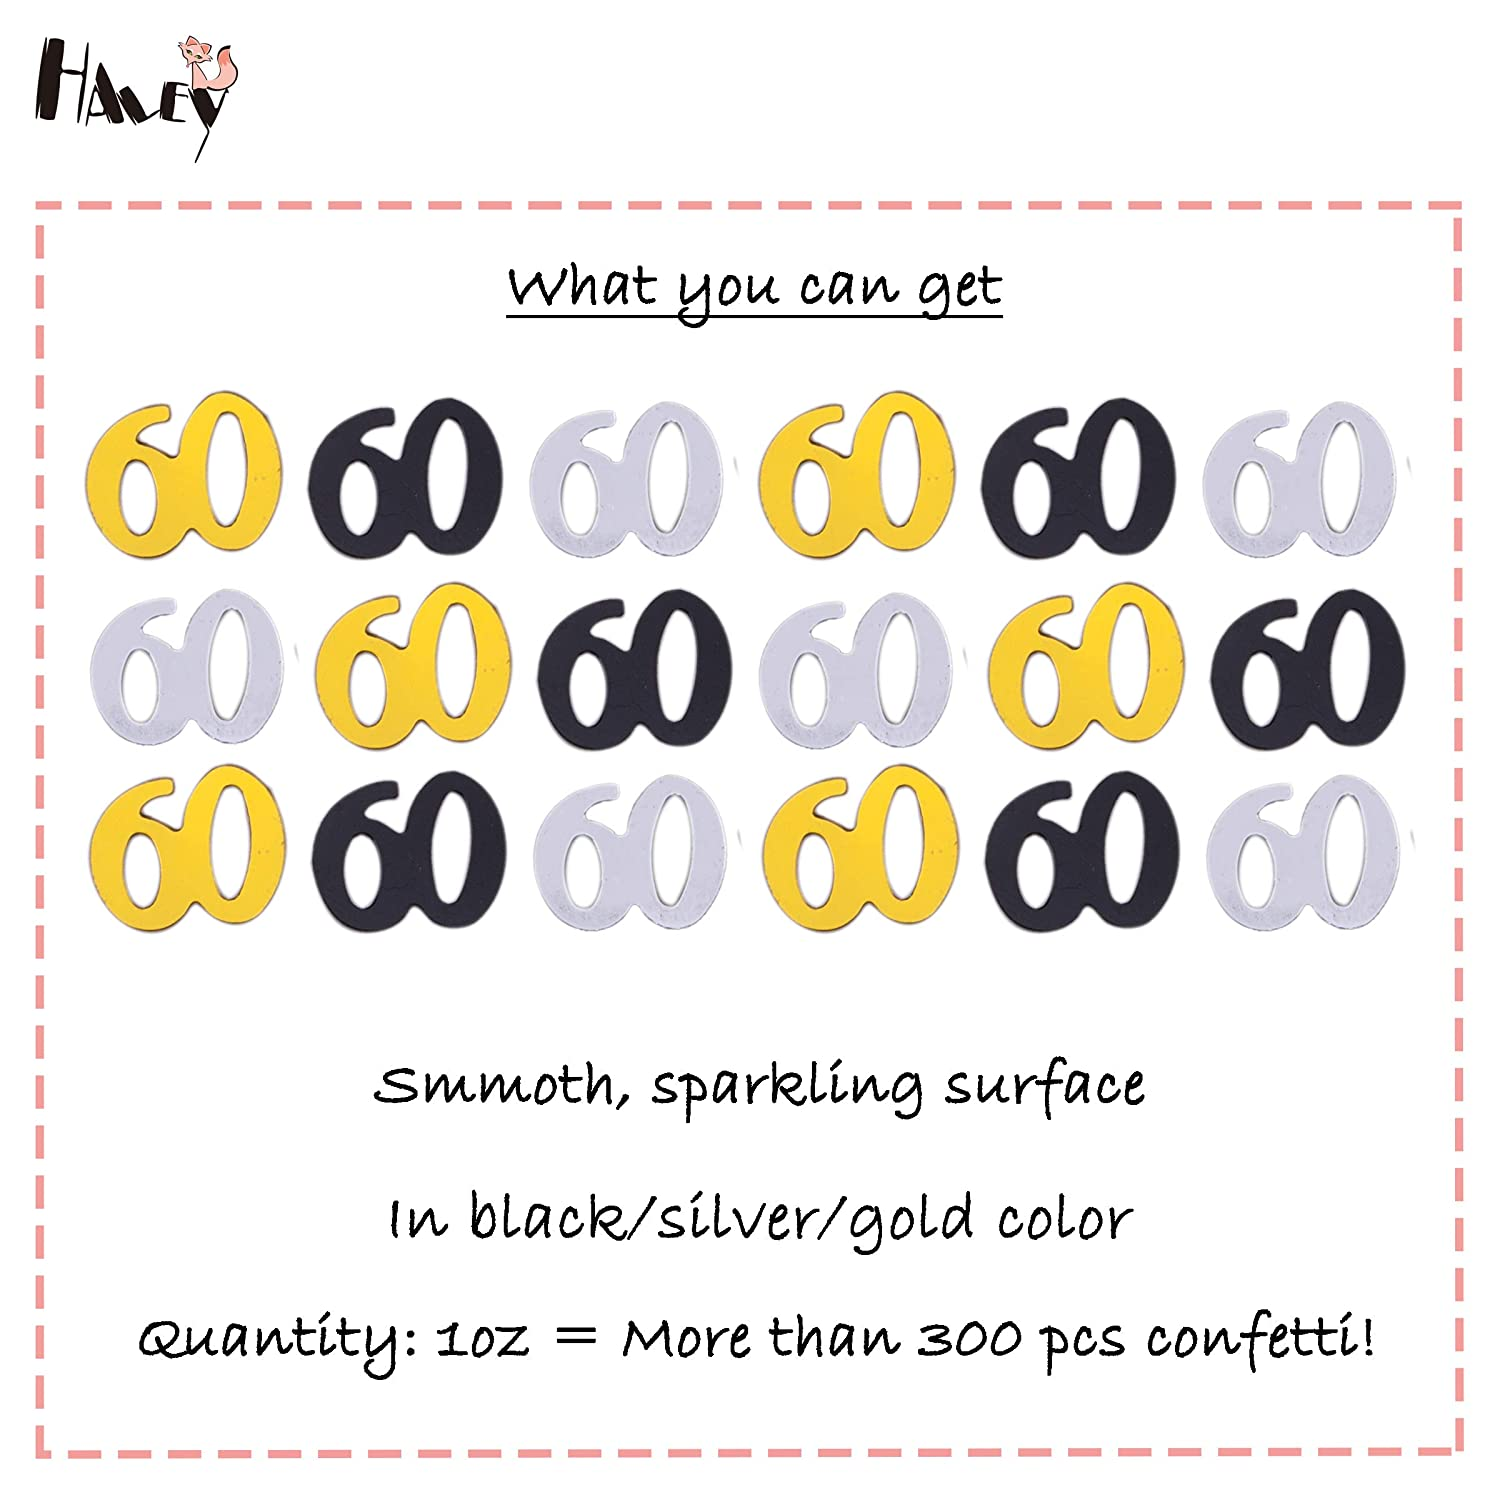 Haley Party 60th Birthday Decorations Anniversary 60 Confetti Metallic Foil For